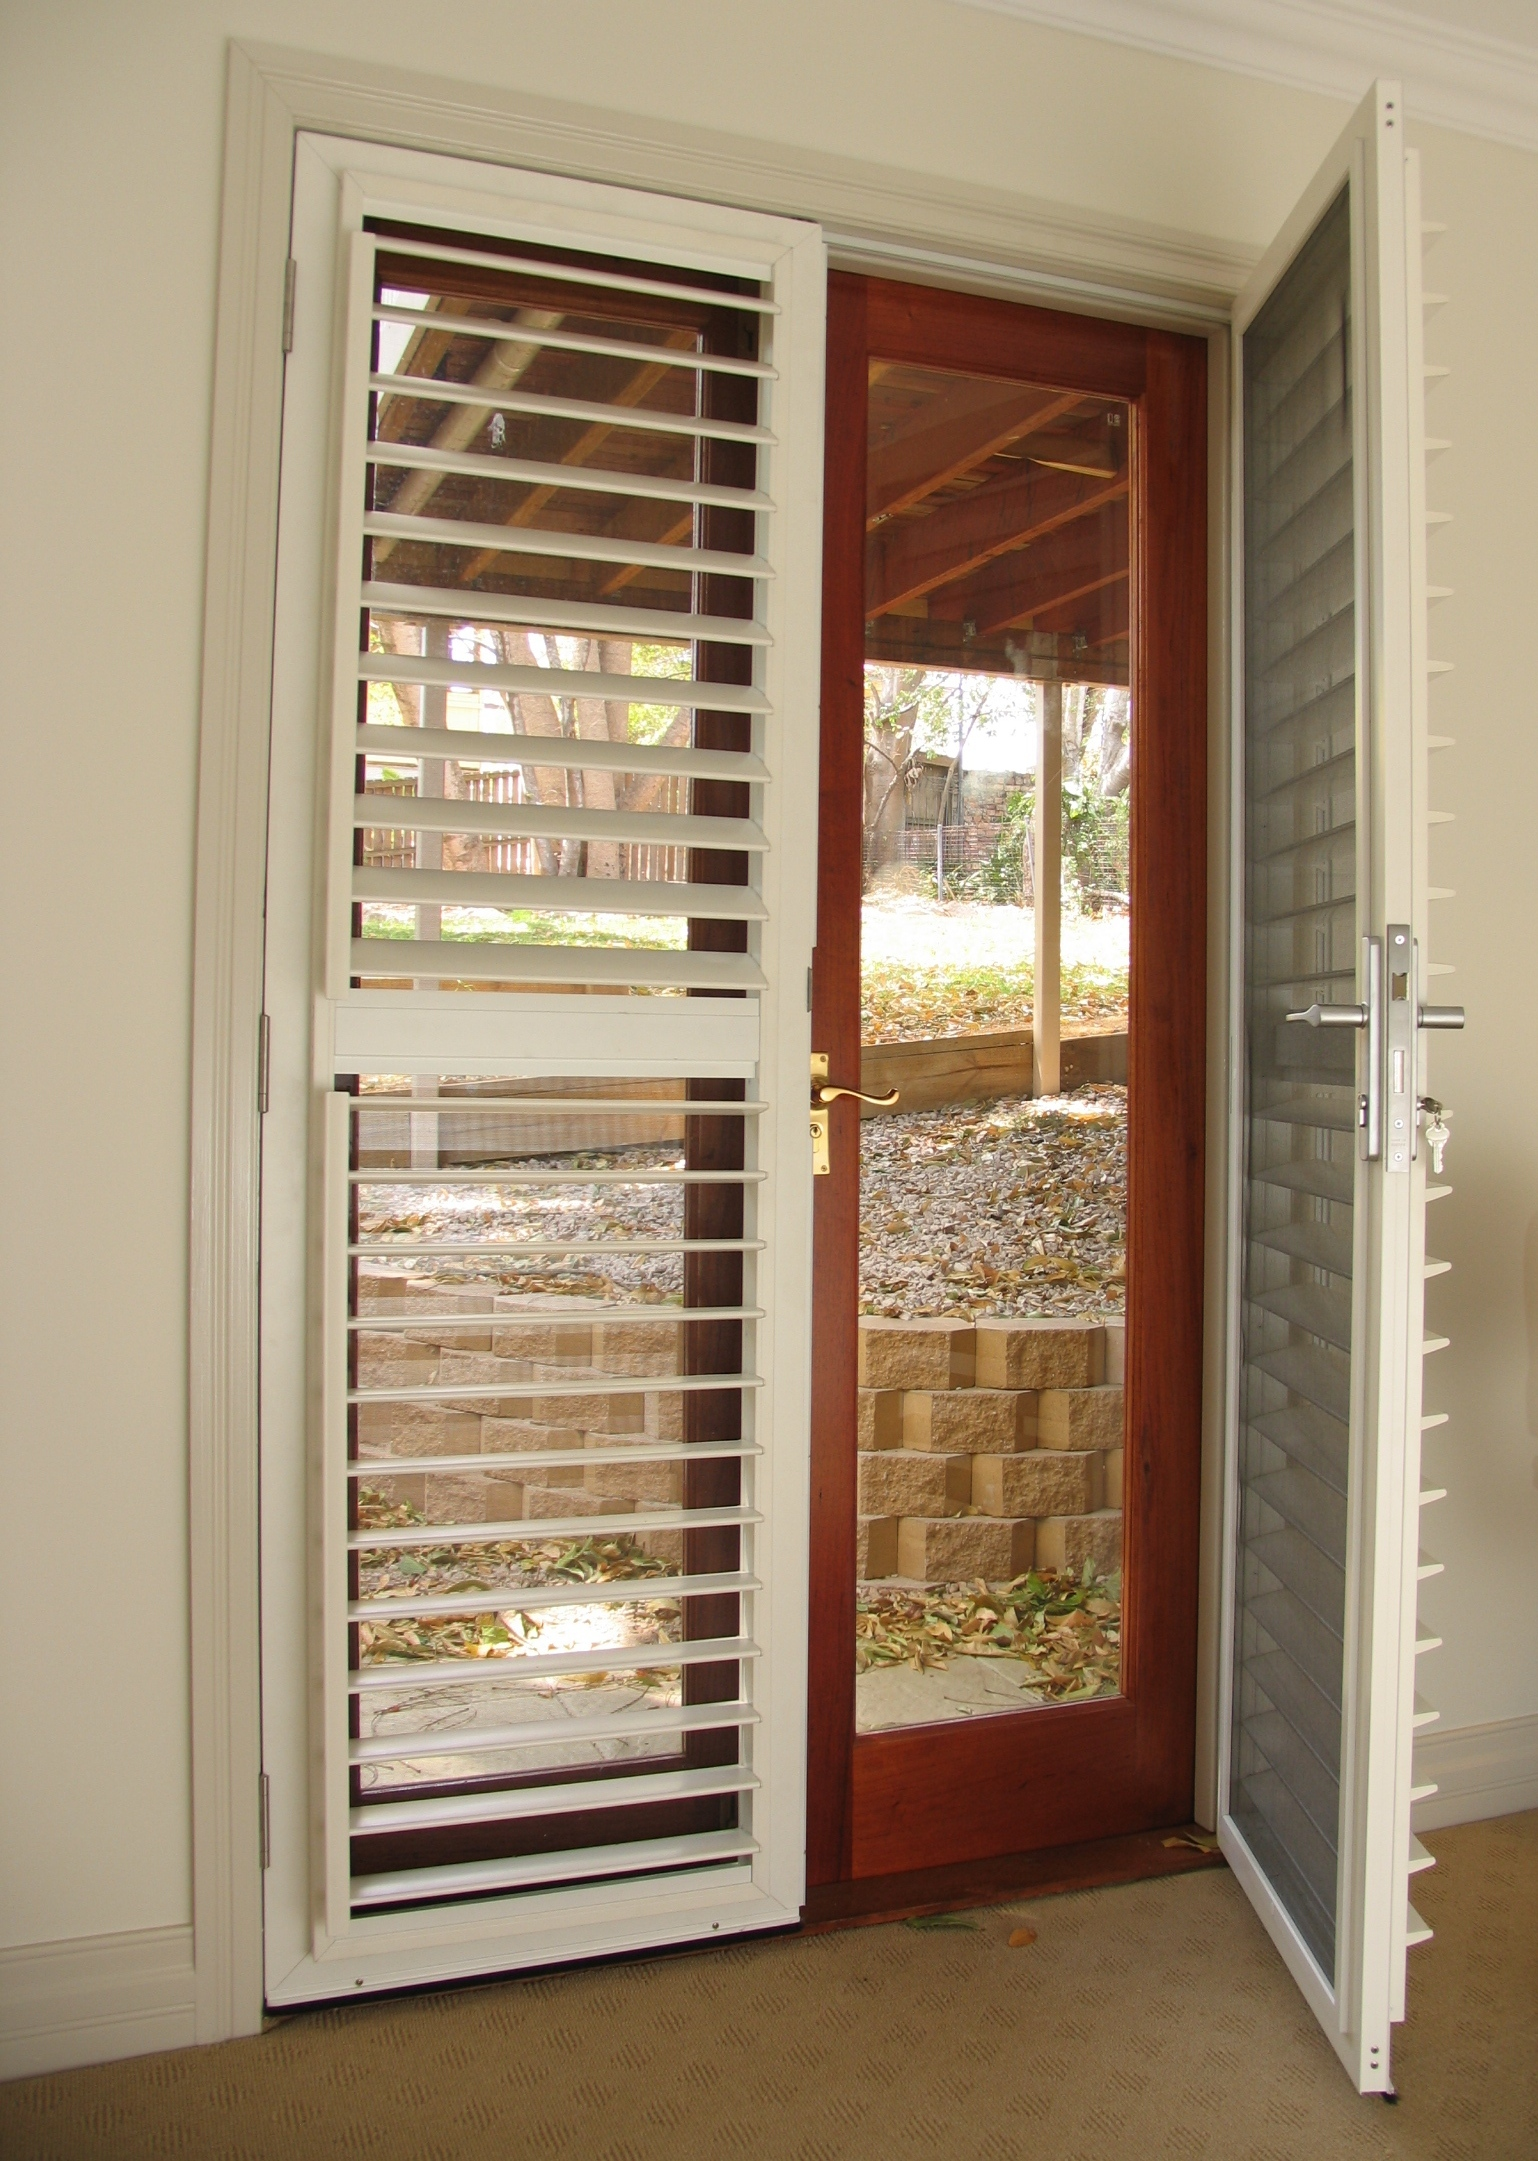 Lockable security shutters with insect screens selector for Insect screens for french doors